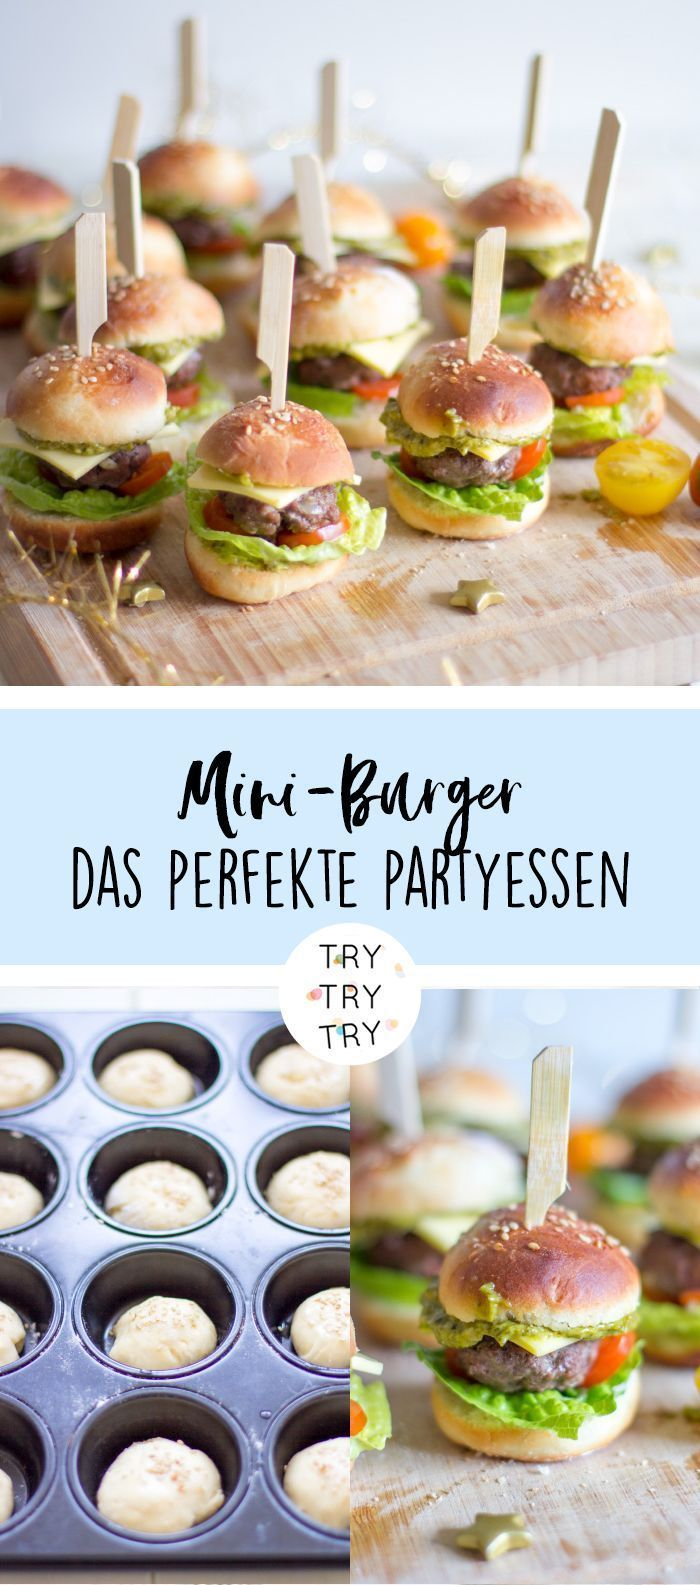 Der perfekte Party Snack! Mini-Burger